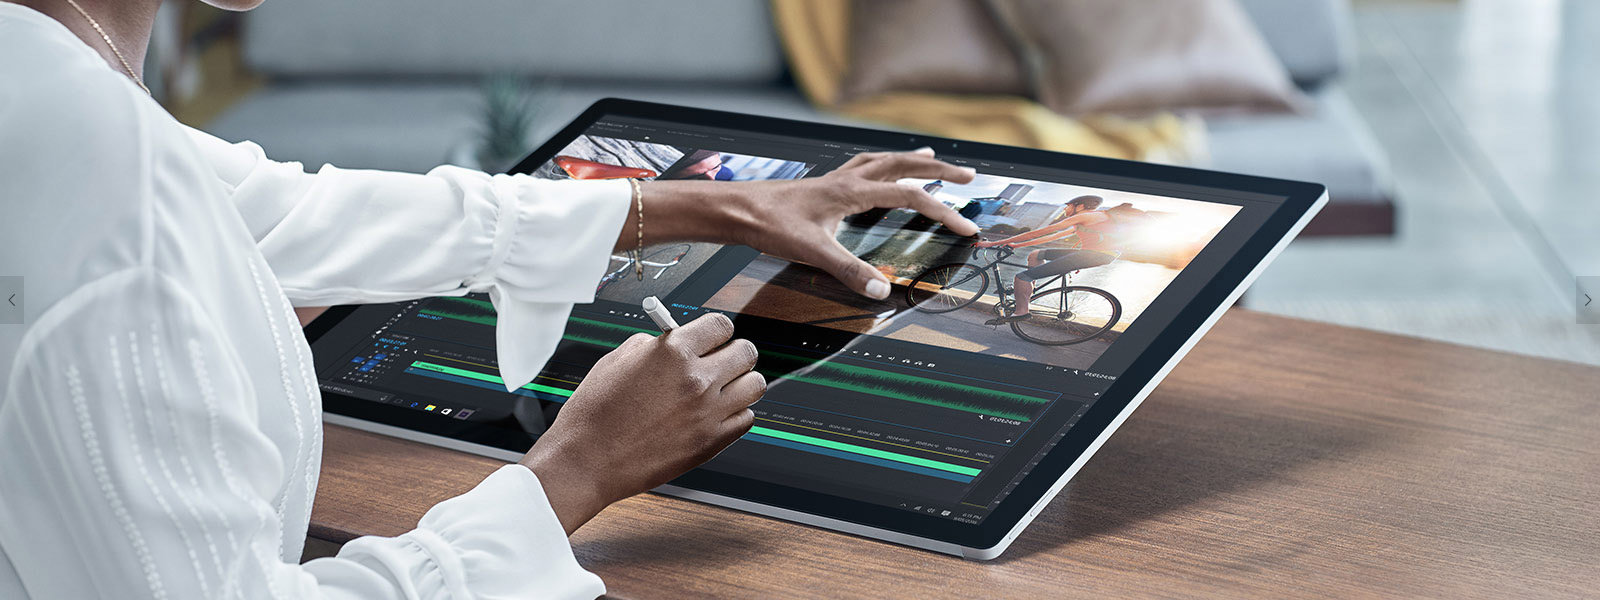 Person using Surface Pen and touch on screen.